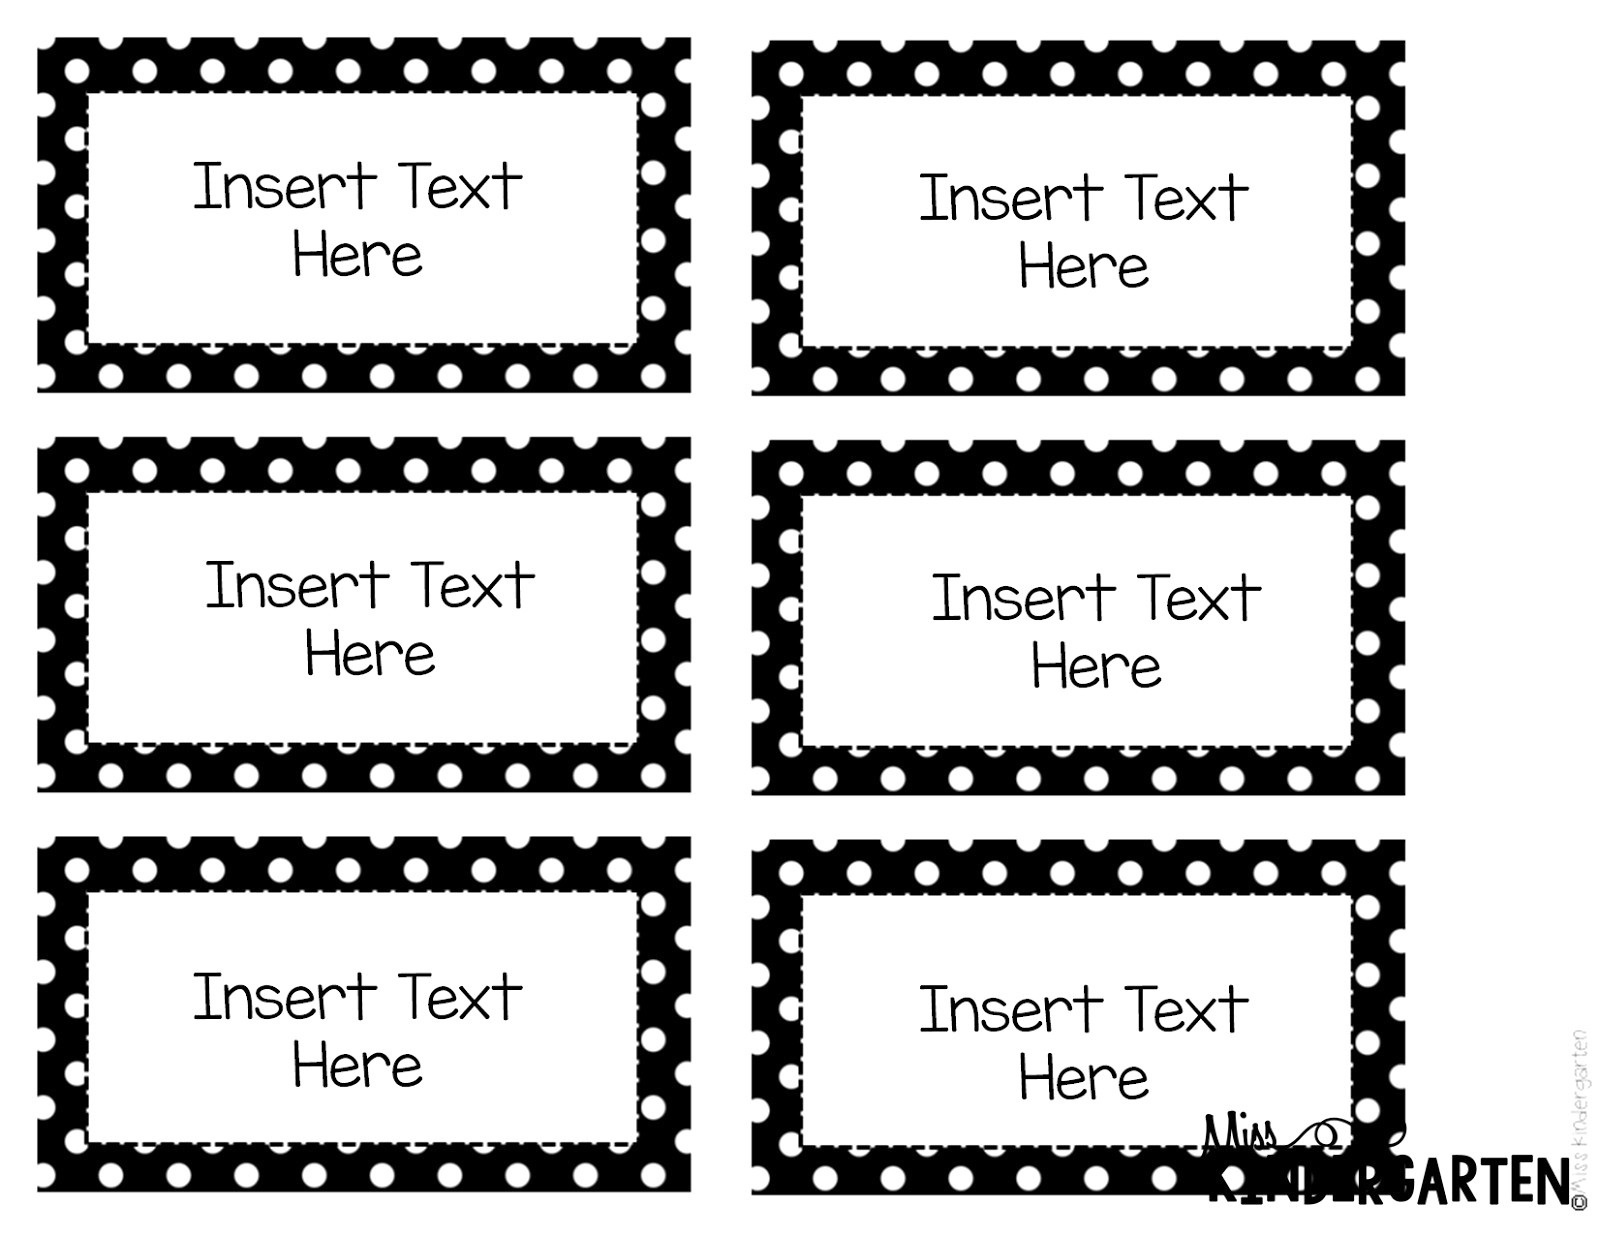 Free Editable Printable Labels   Chart And Printable World - Free Editable Printable Labels